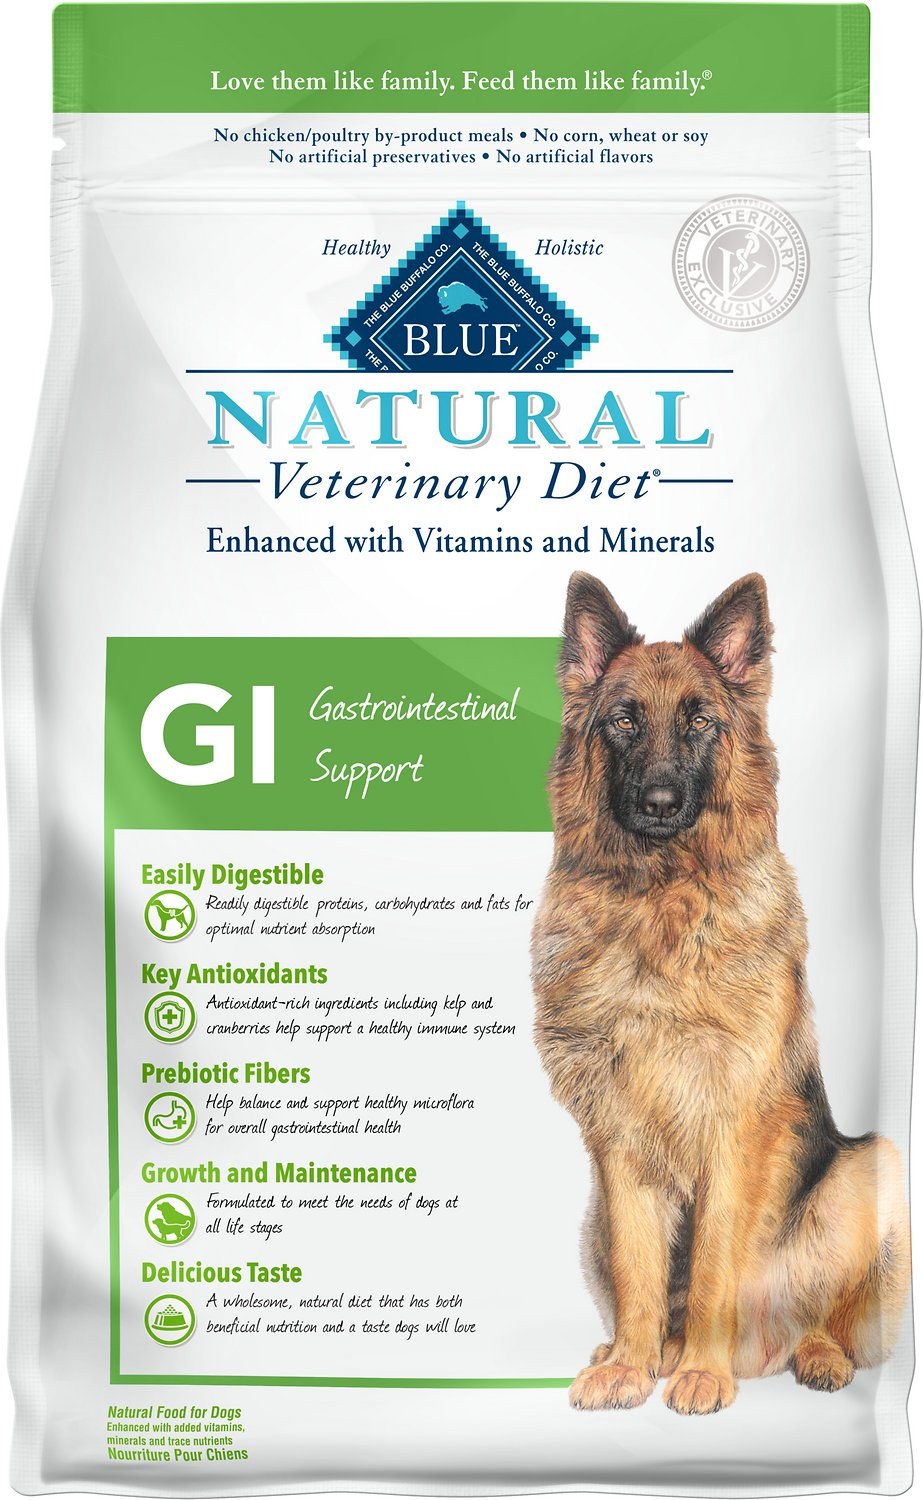 Blue Buffalo Natural Veterinary Diet GI Gastrointestinal Support Dry Dog Food, 6-lb